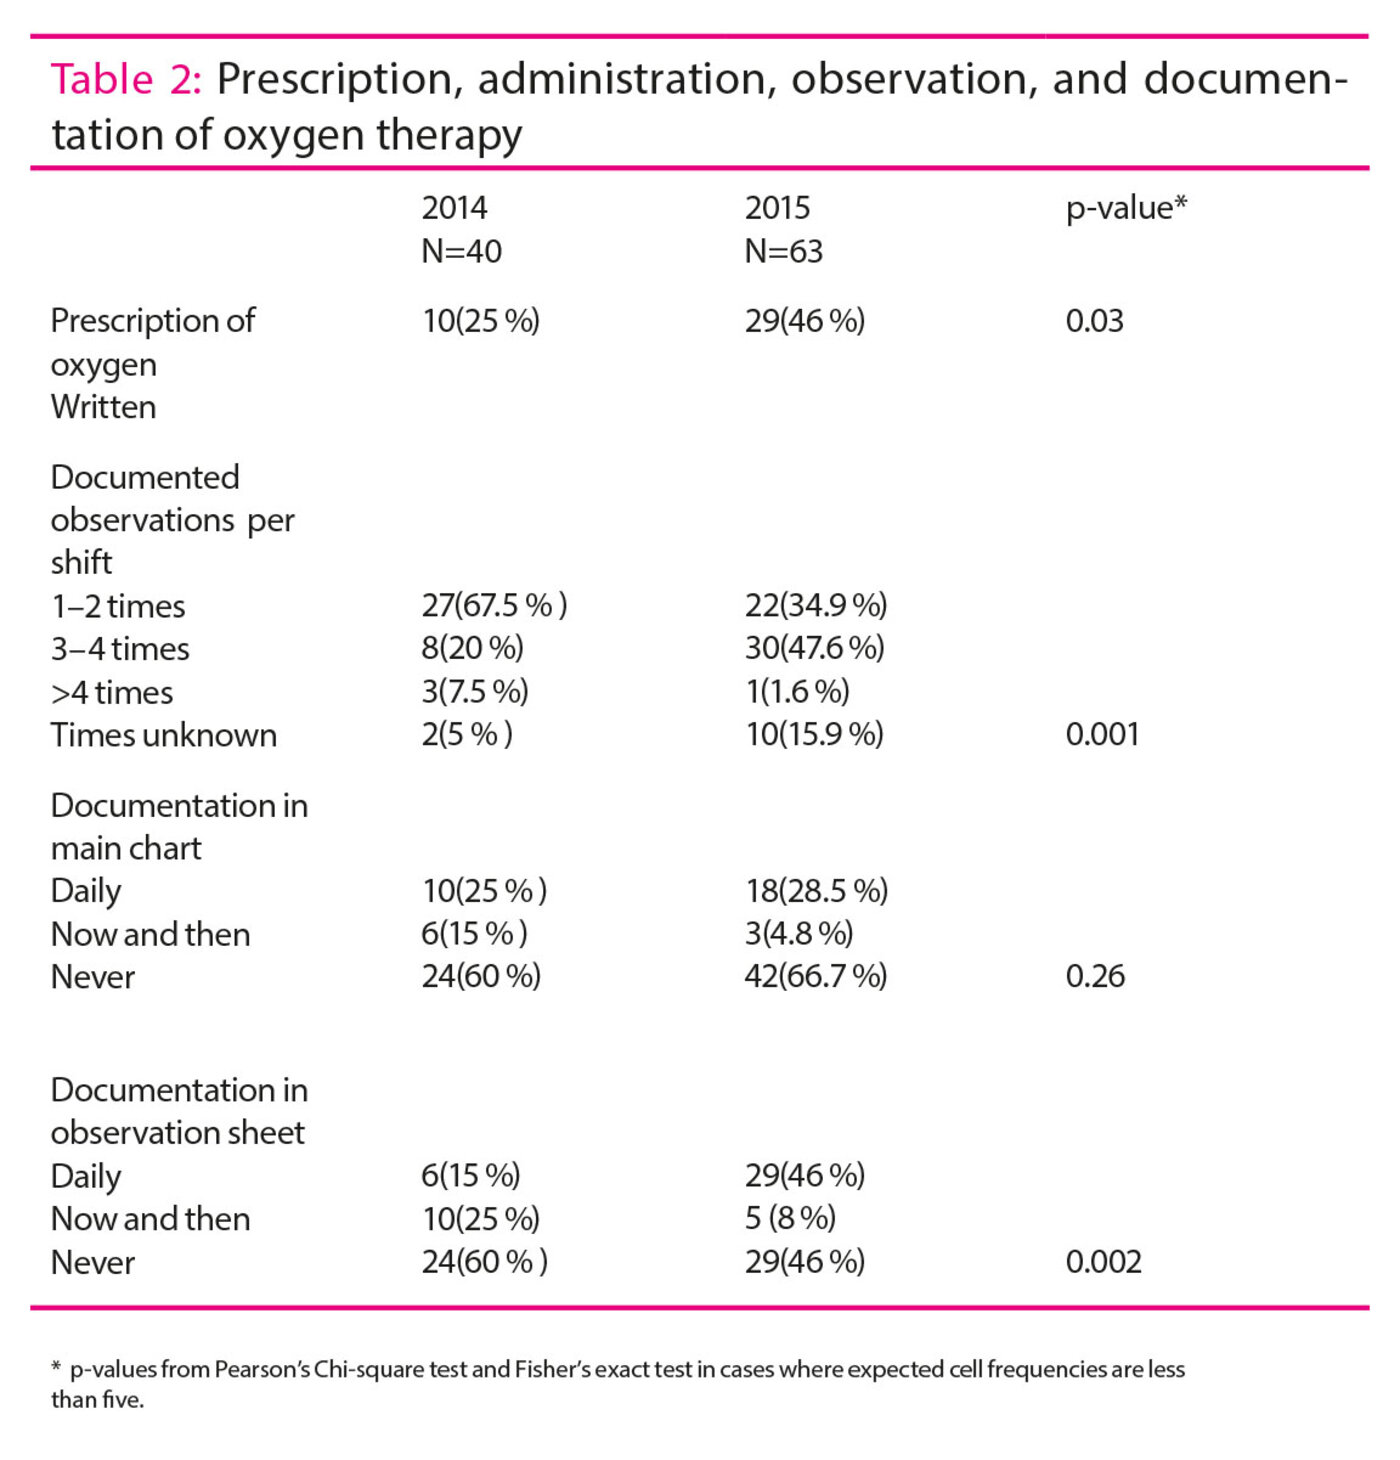 Table 2: Prescription, administration, observation, and documentation of oxygen therapy